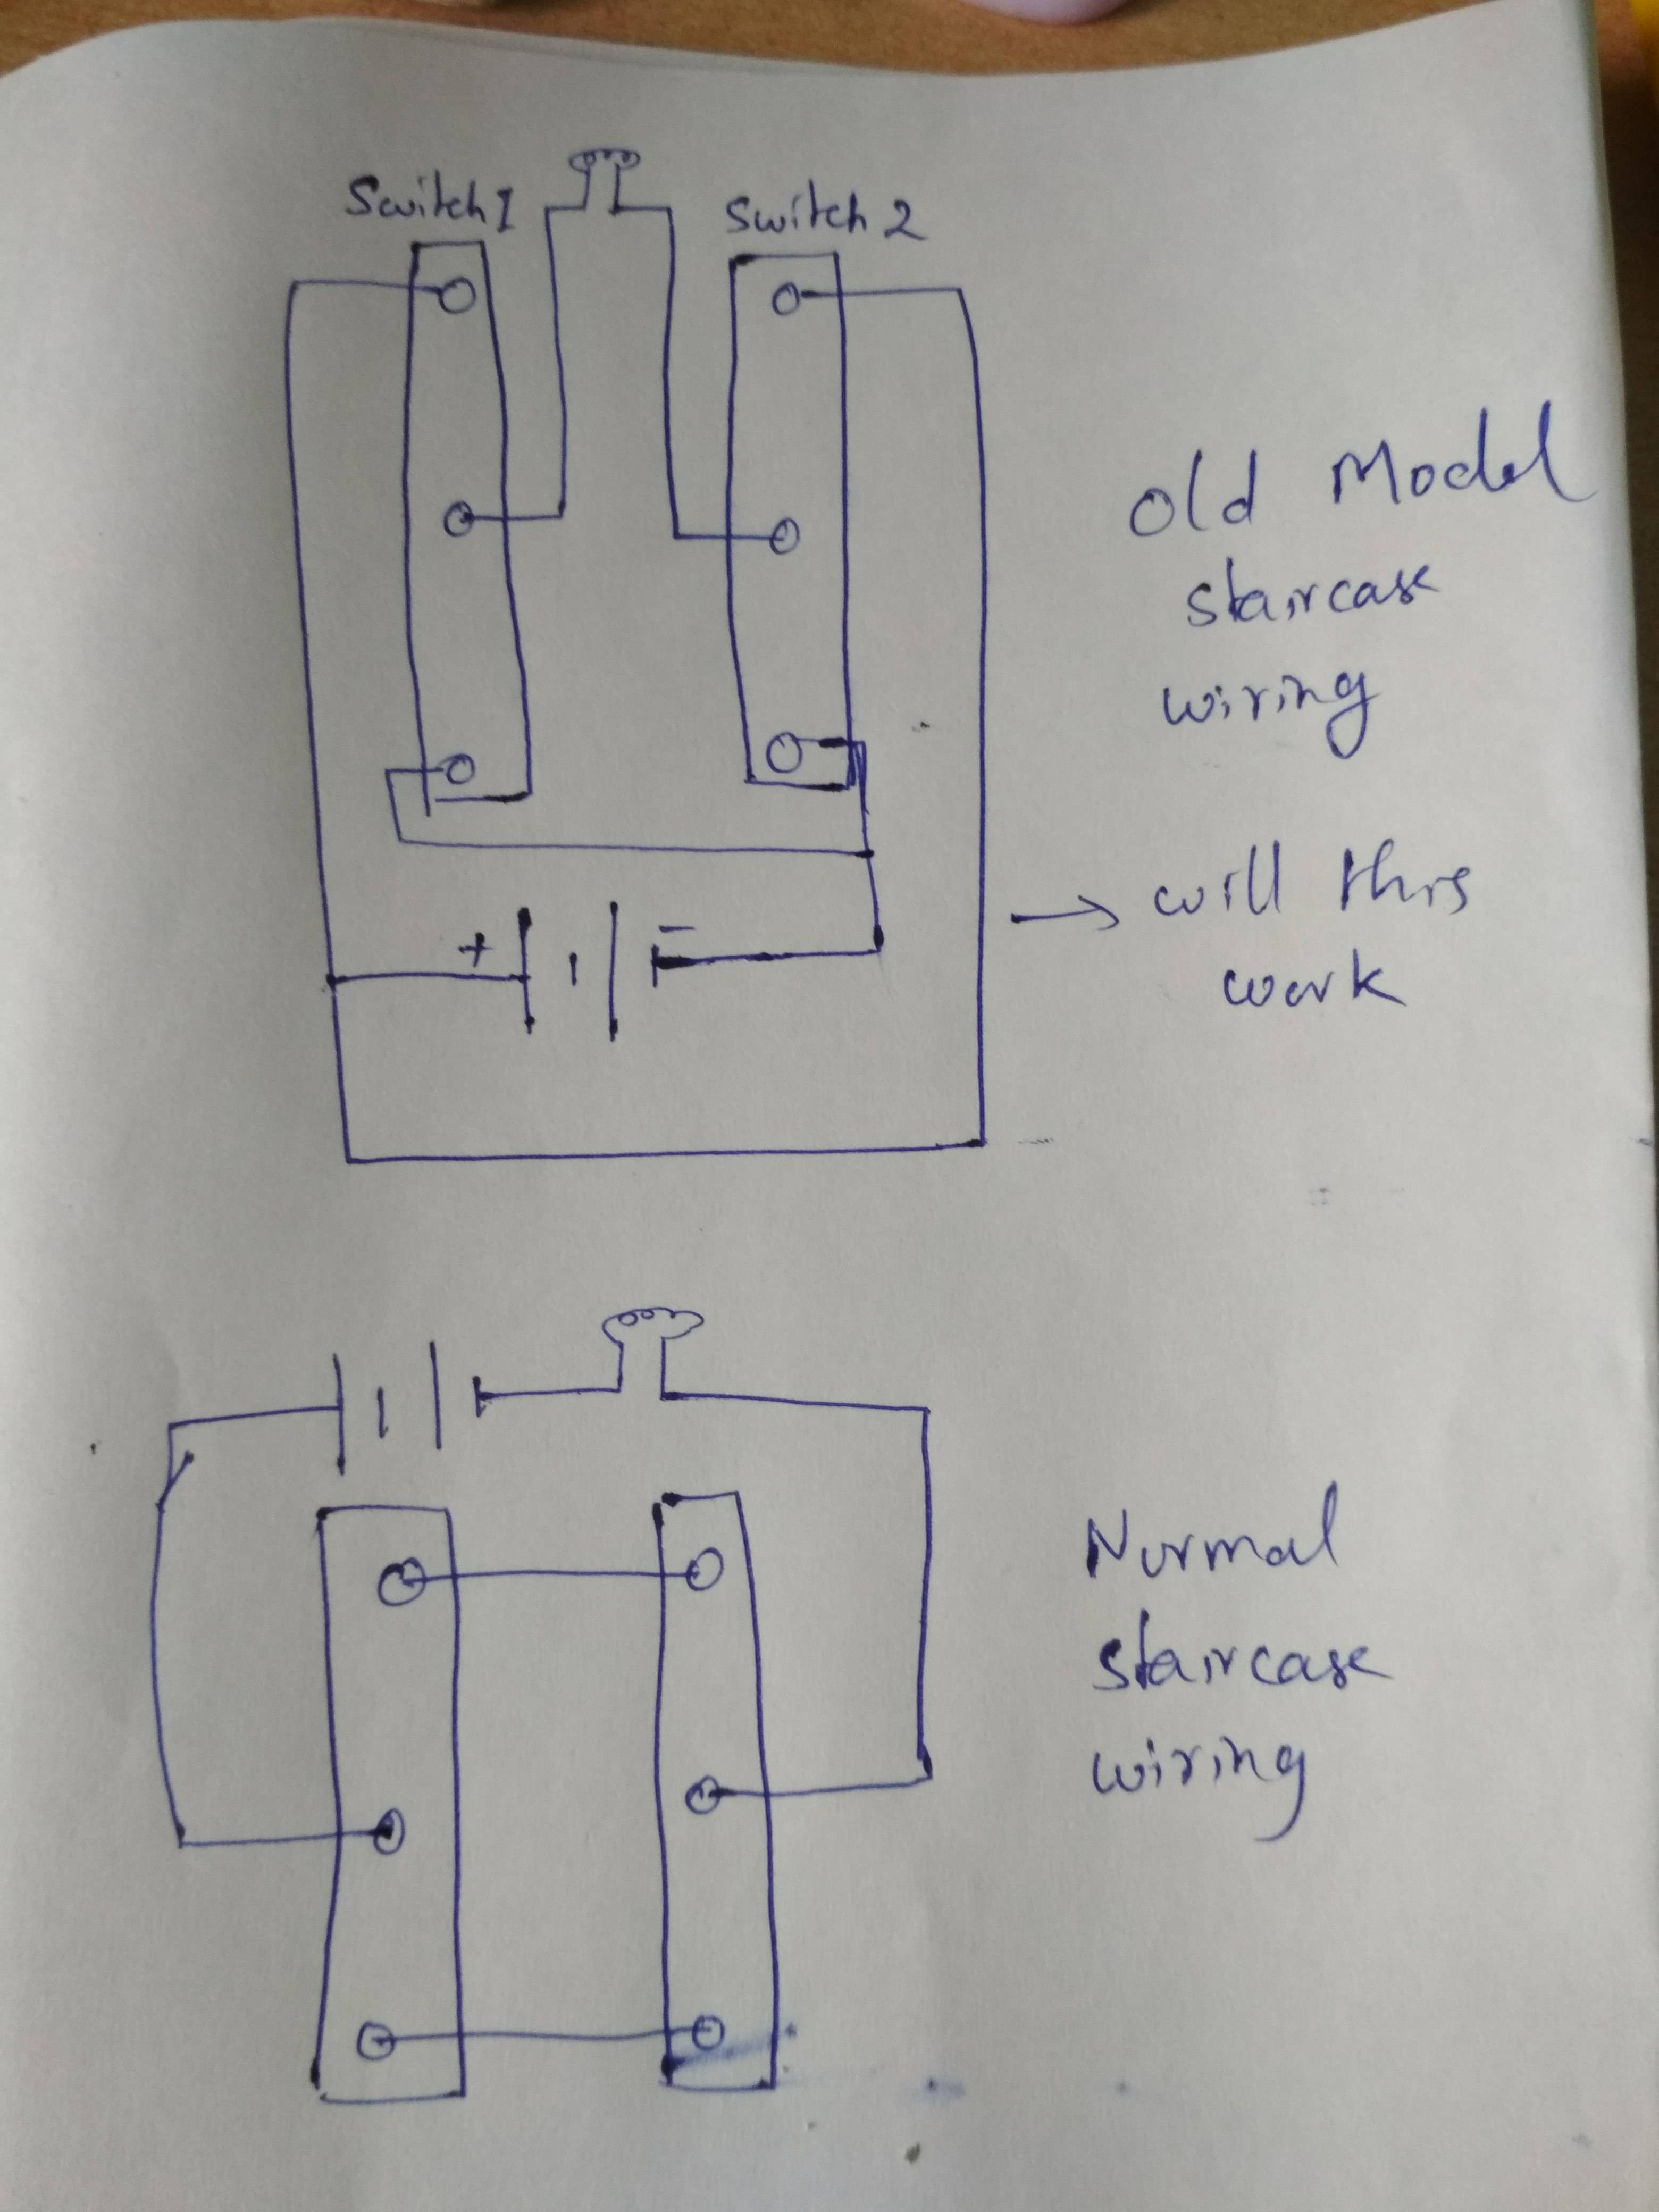 Inspirational Stair Light Switch Wiring Diagram Diagrams Digramssample Diagramimages Wiringdiagramsample W Light Switch Wiring Light Switch Stair Lighting